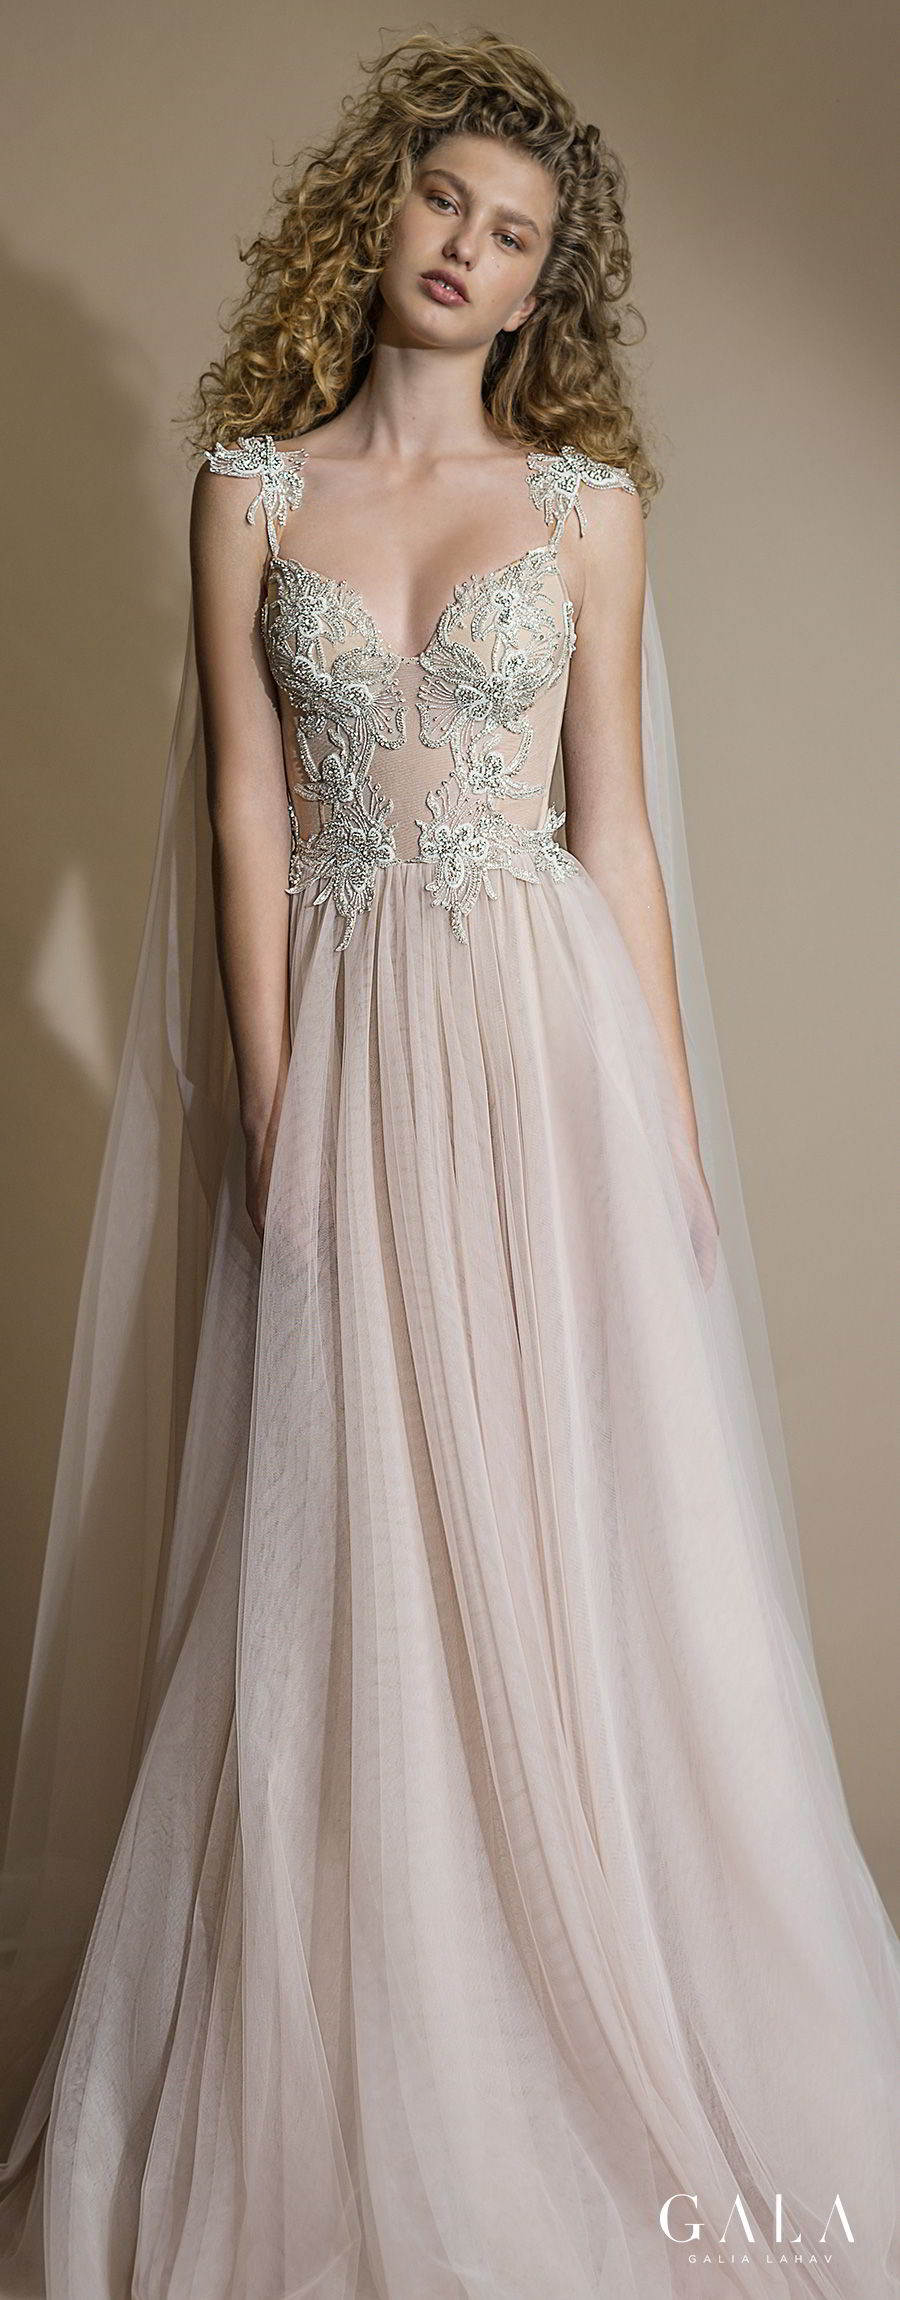 galia lahav gala 2019 bridal sleeveless with strap sweetheart neckline heavily embellished bodice bustier tulle skirt romantic blush a  line wedding dress razor back chapel train (111) lv